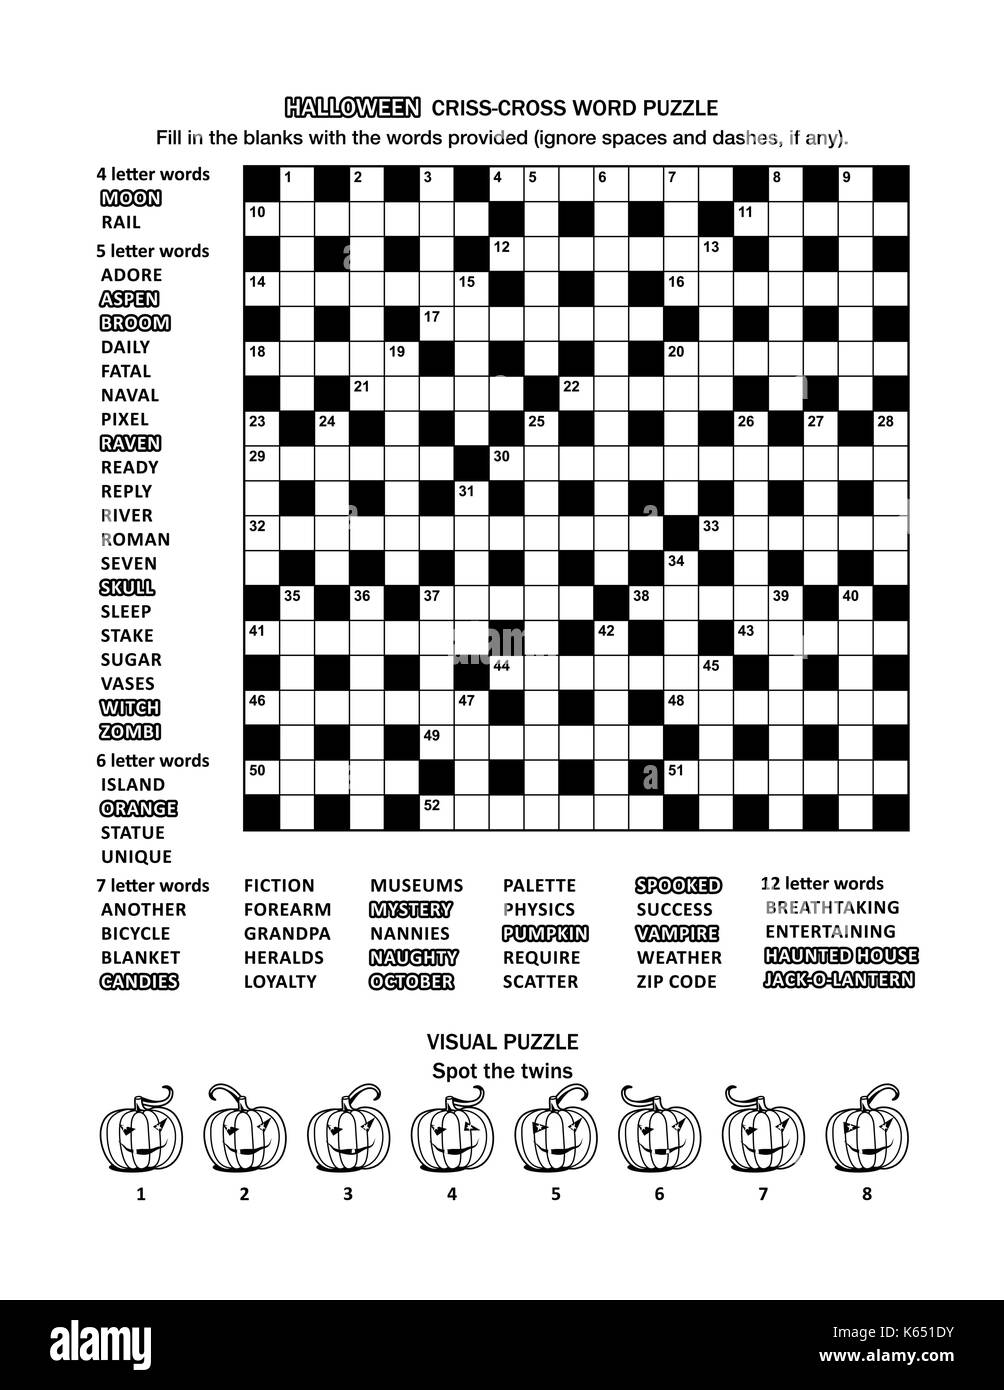 Halloween Themed Puzzle Page With 19x19 Criss Cross Word Game English Language And Visual Whimsical Pumpkins Black White